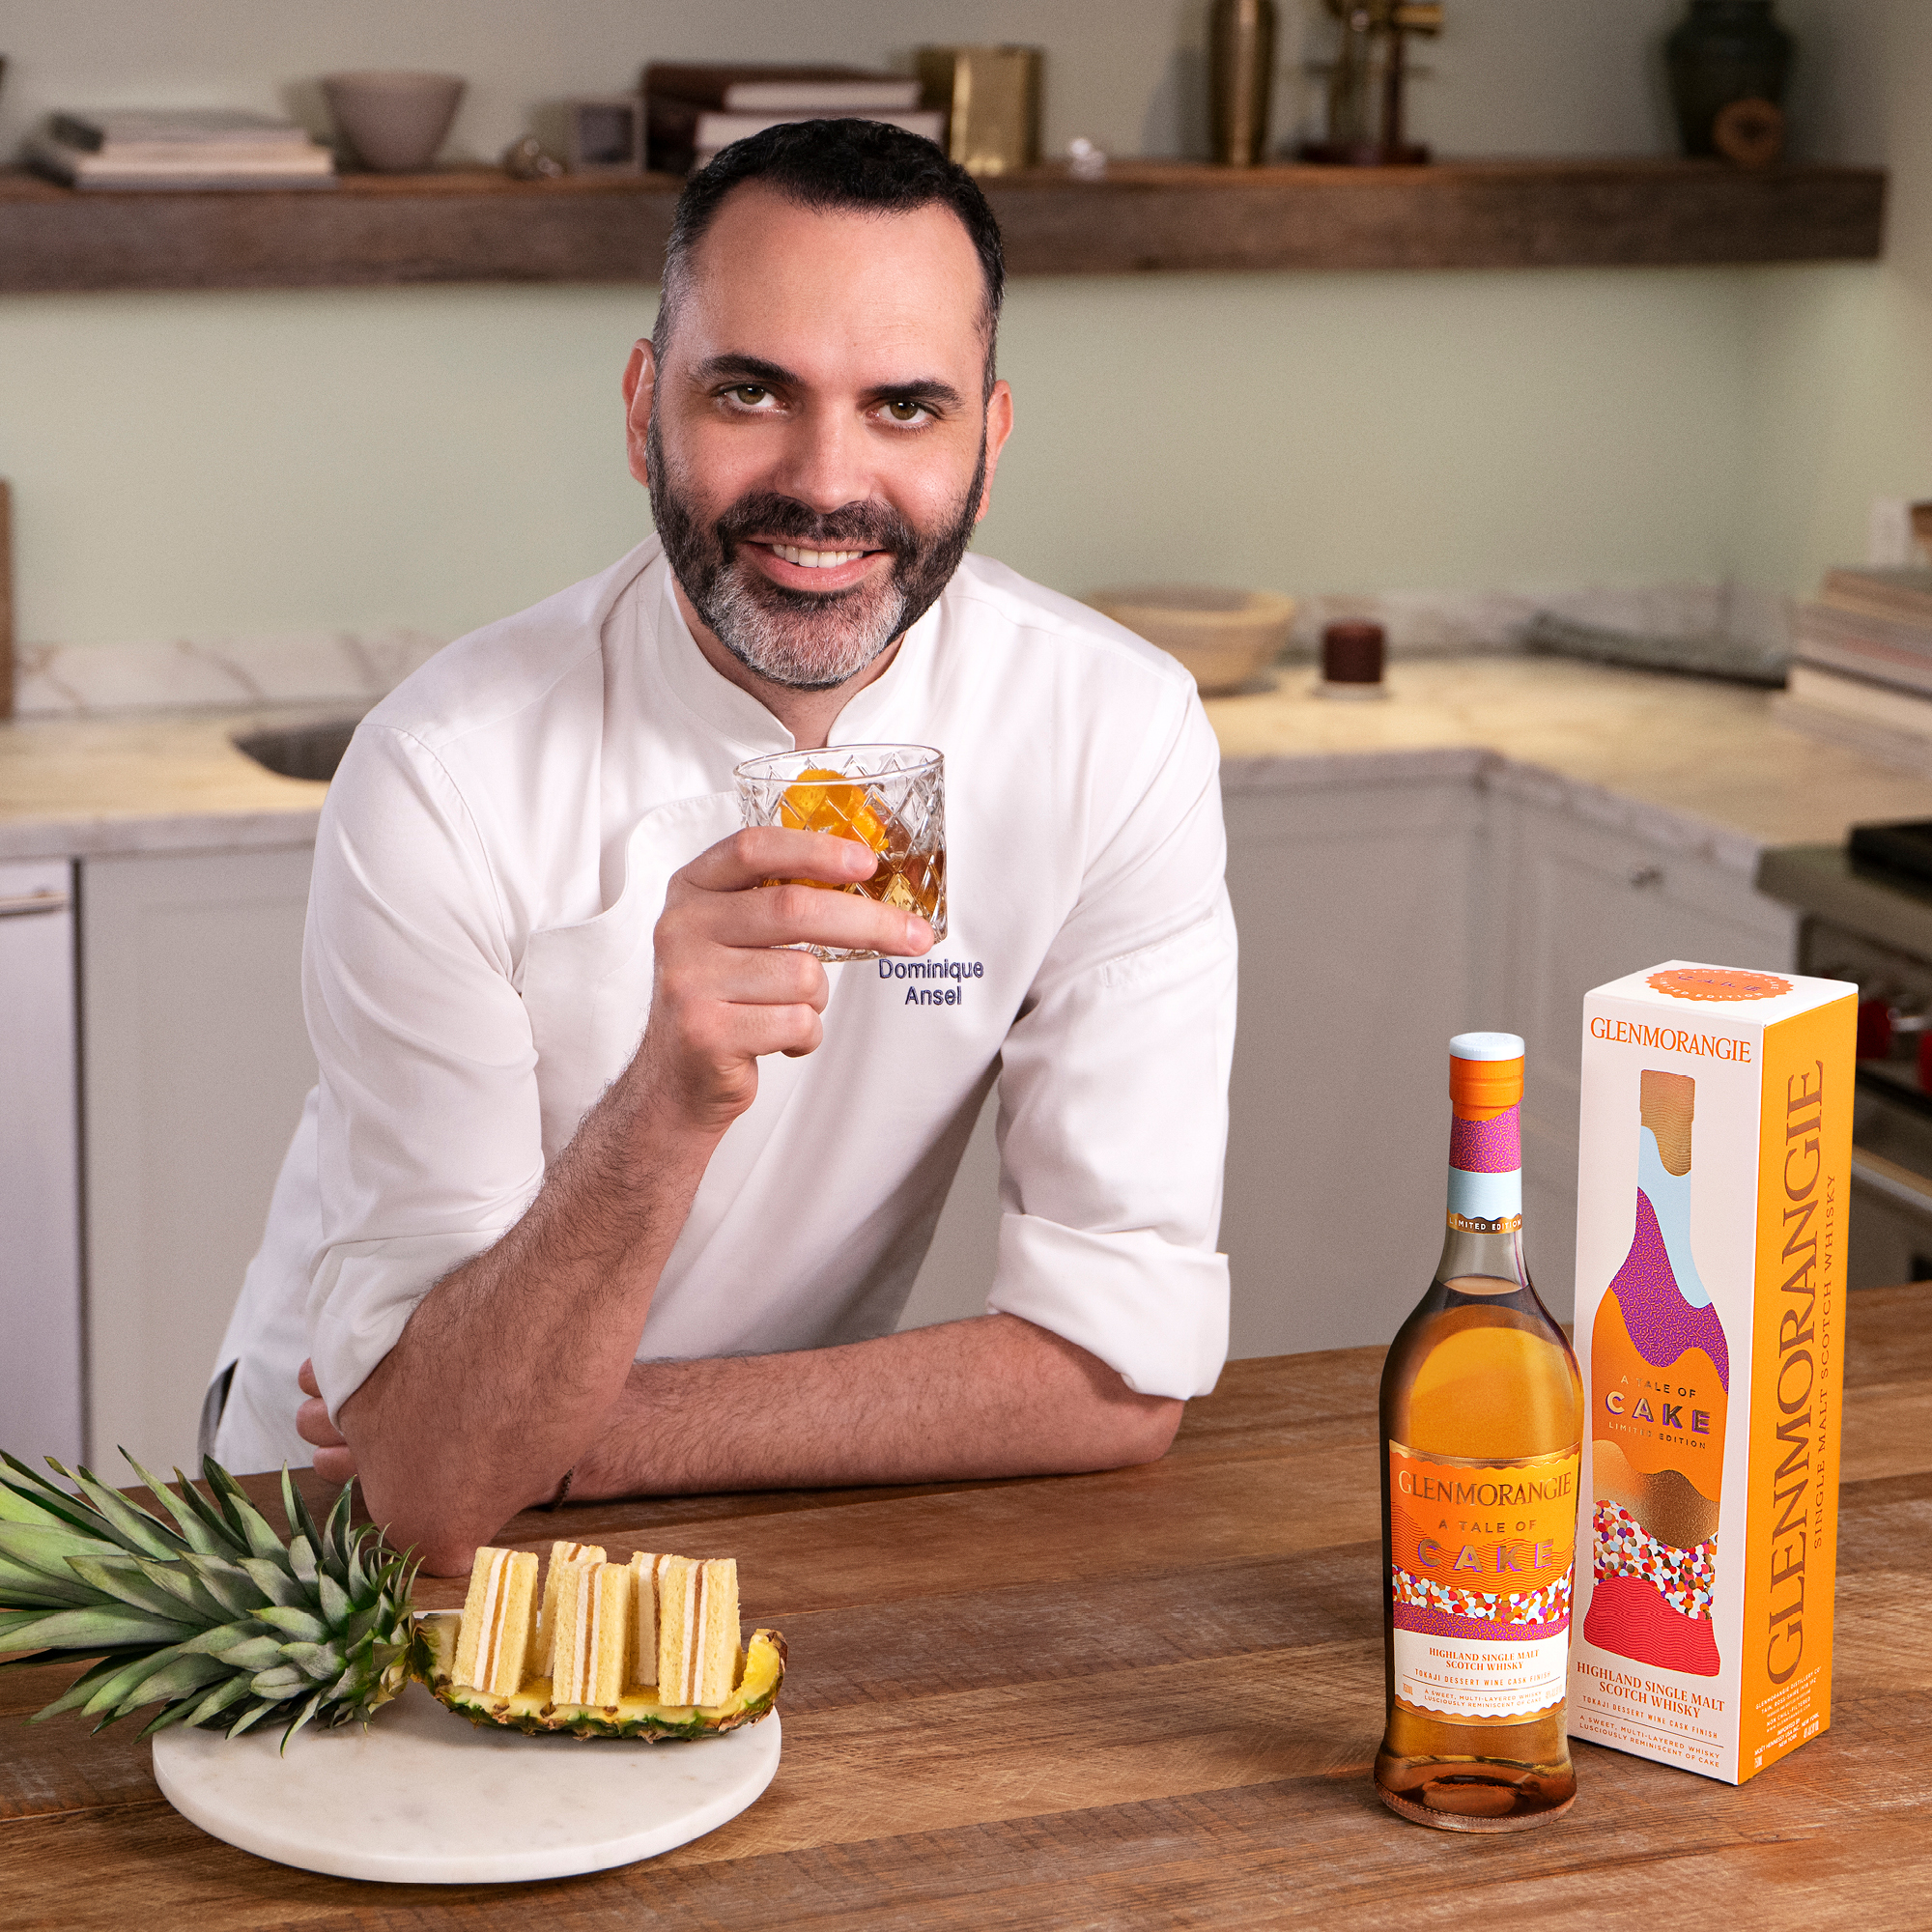 Glenmorangie's A Tale of Cake has been launched with a collaboration with master pastry chef, Dominique Ansel